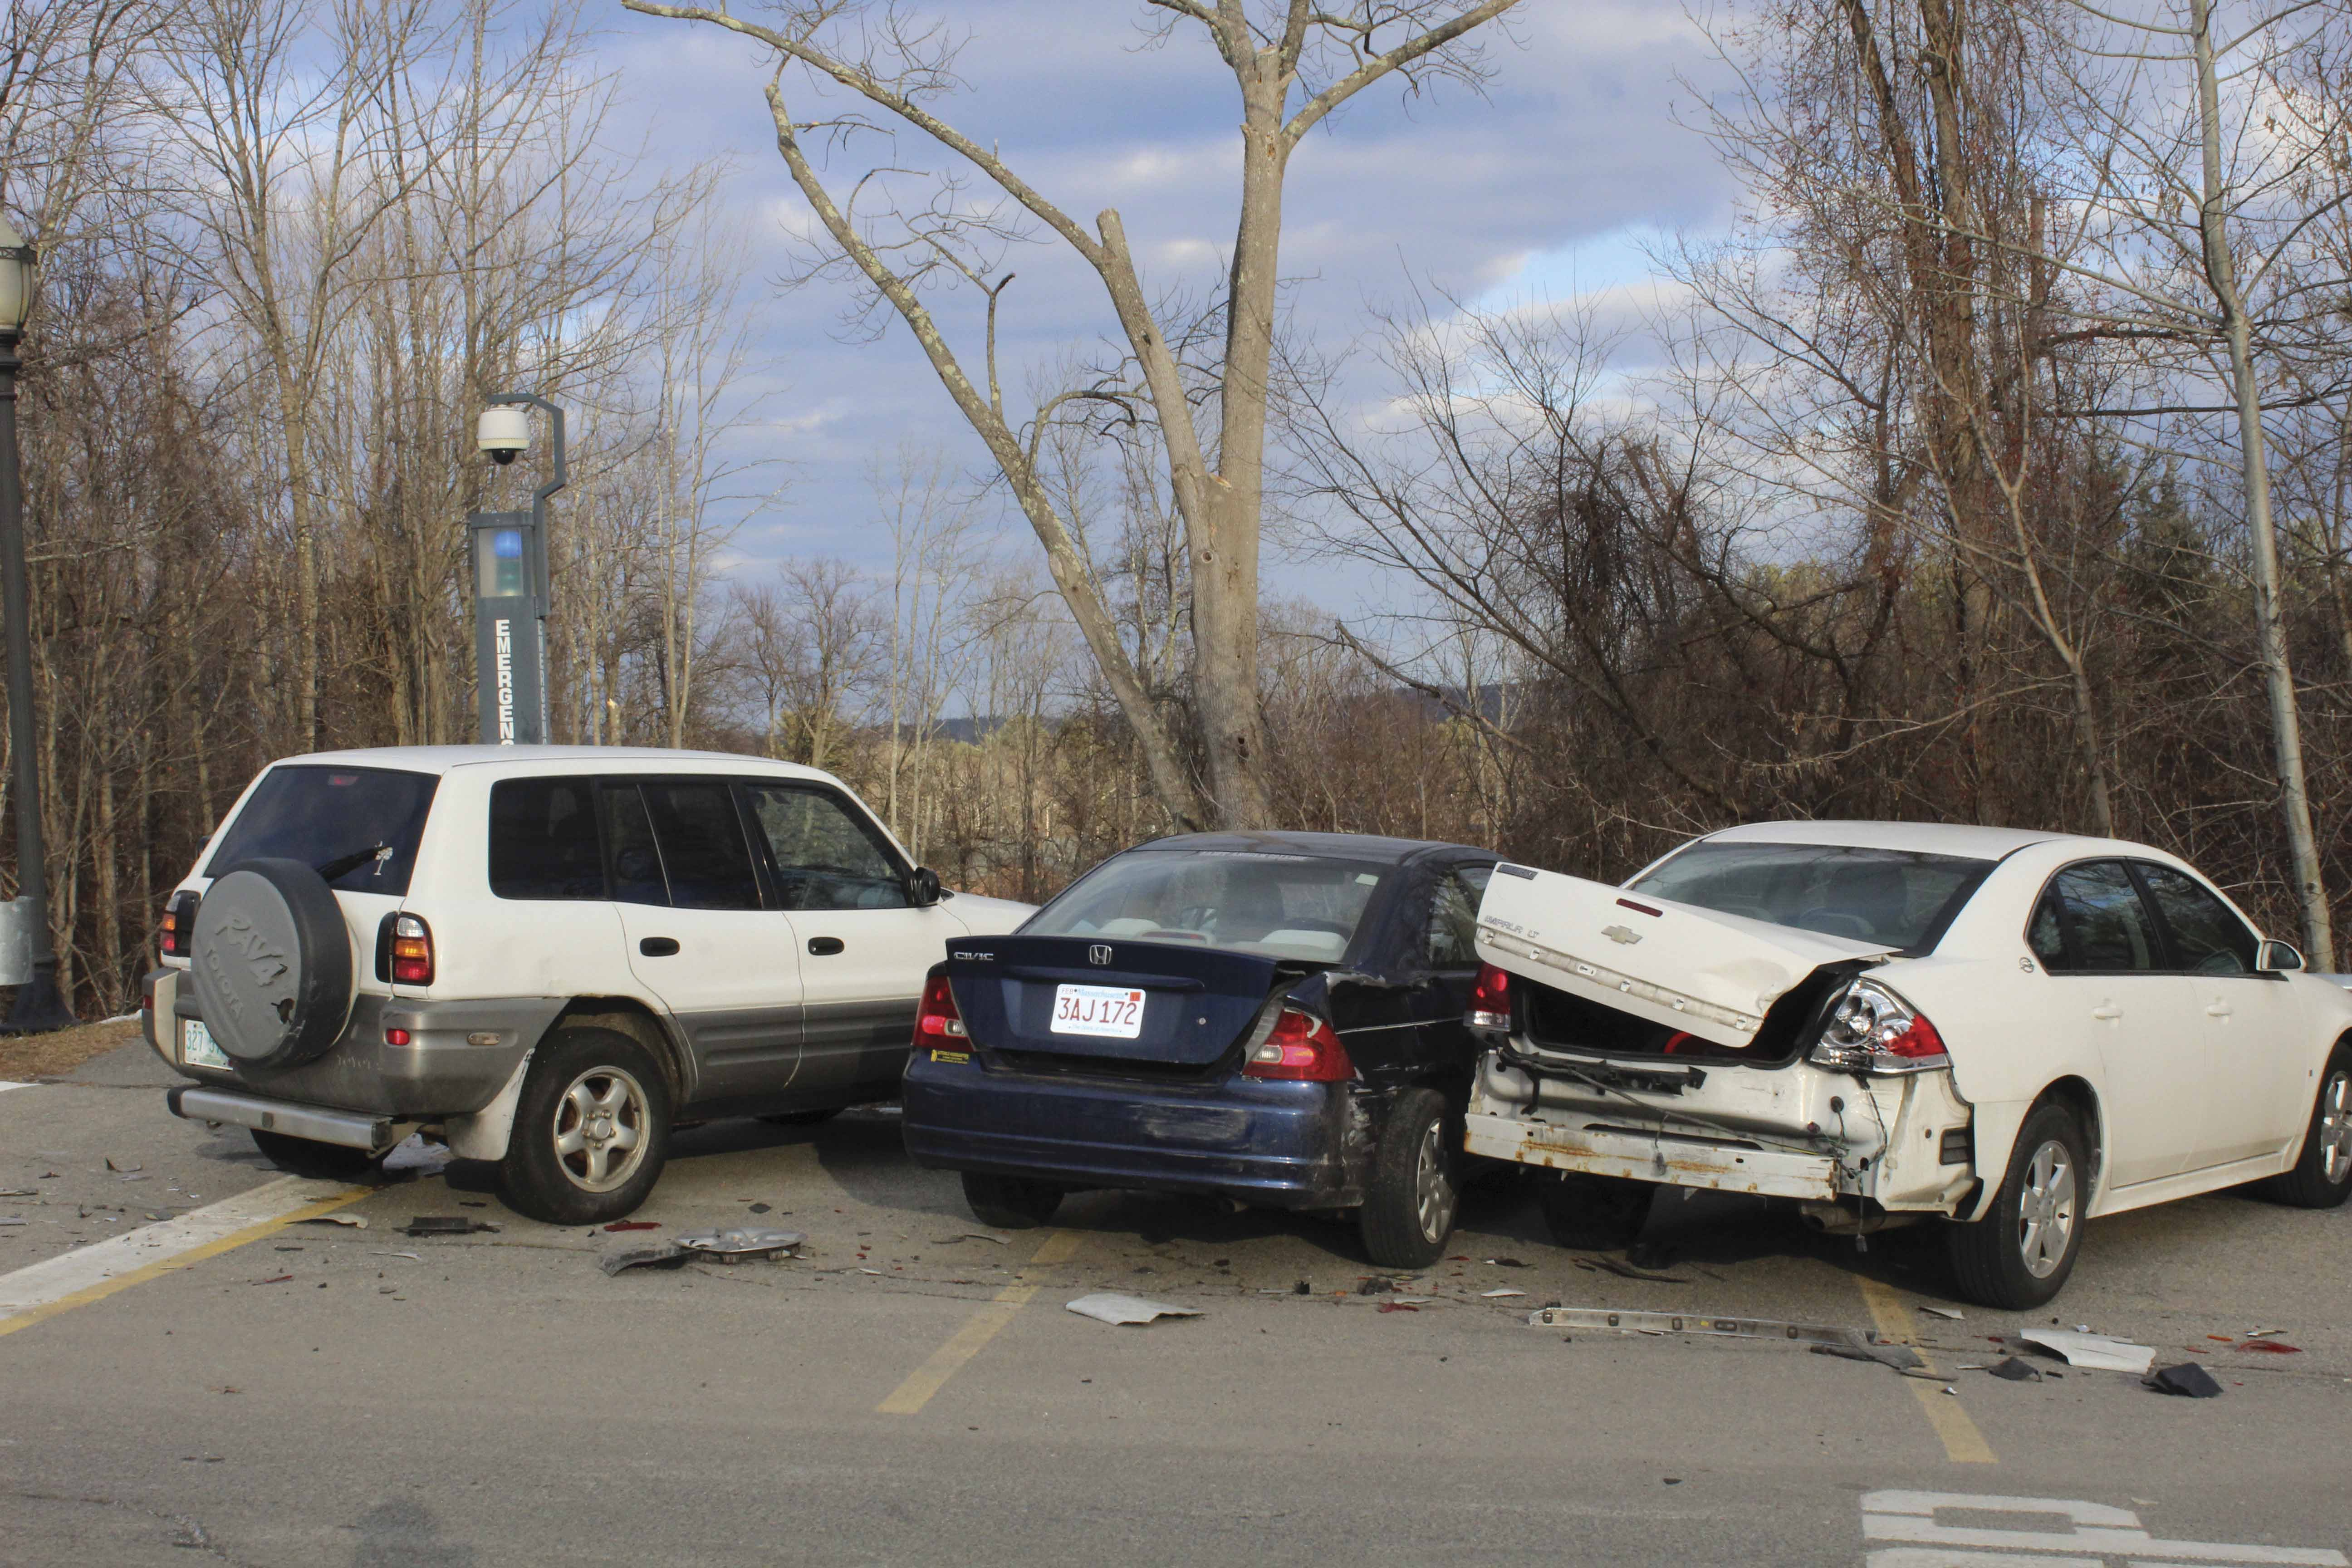 Three student's cars were seriously damaged in a car crash on Jan. 29 in Kavanaugh lot.